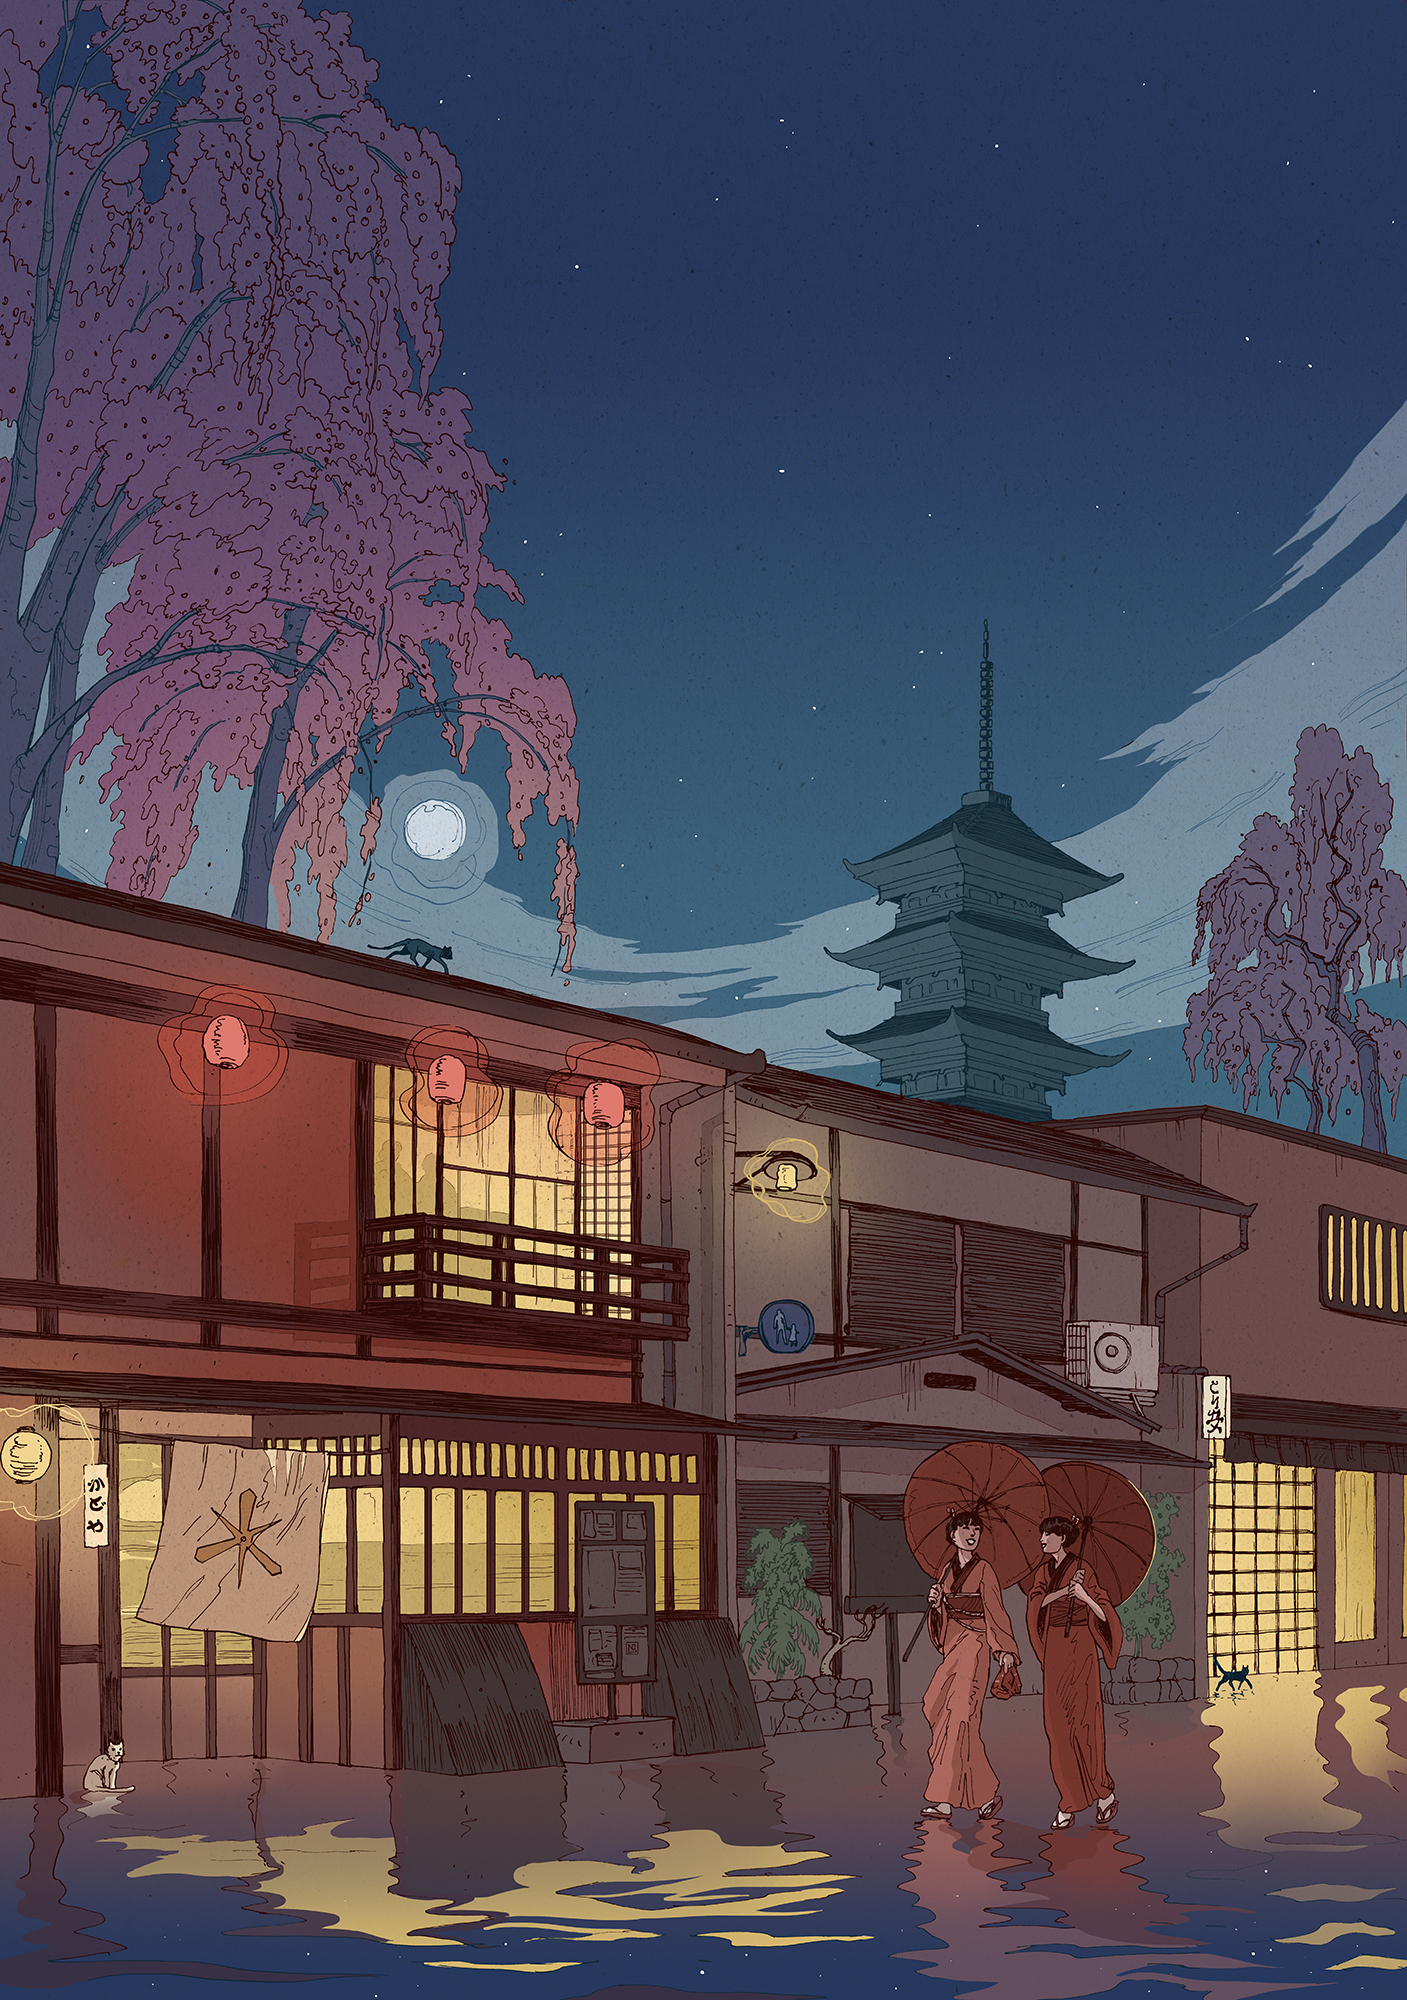 Kyoto at night illustration nicolas castell